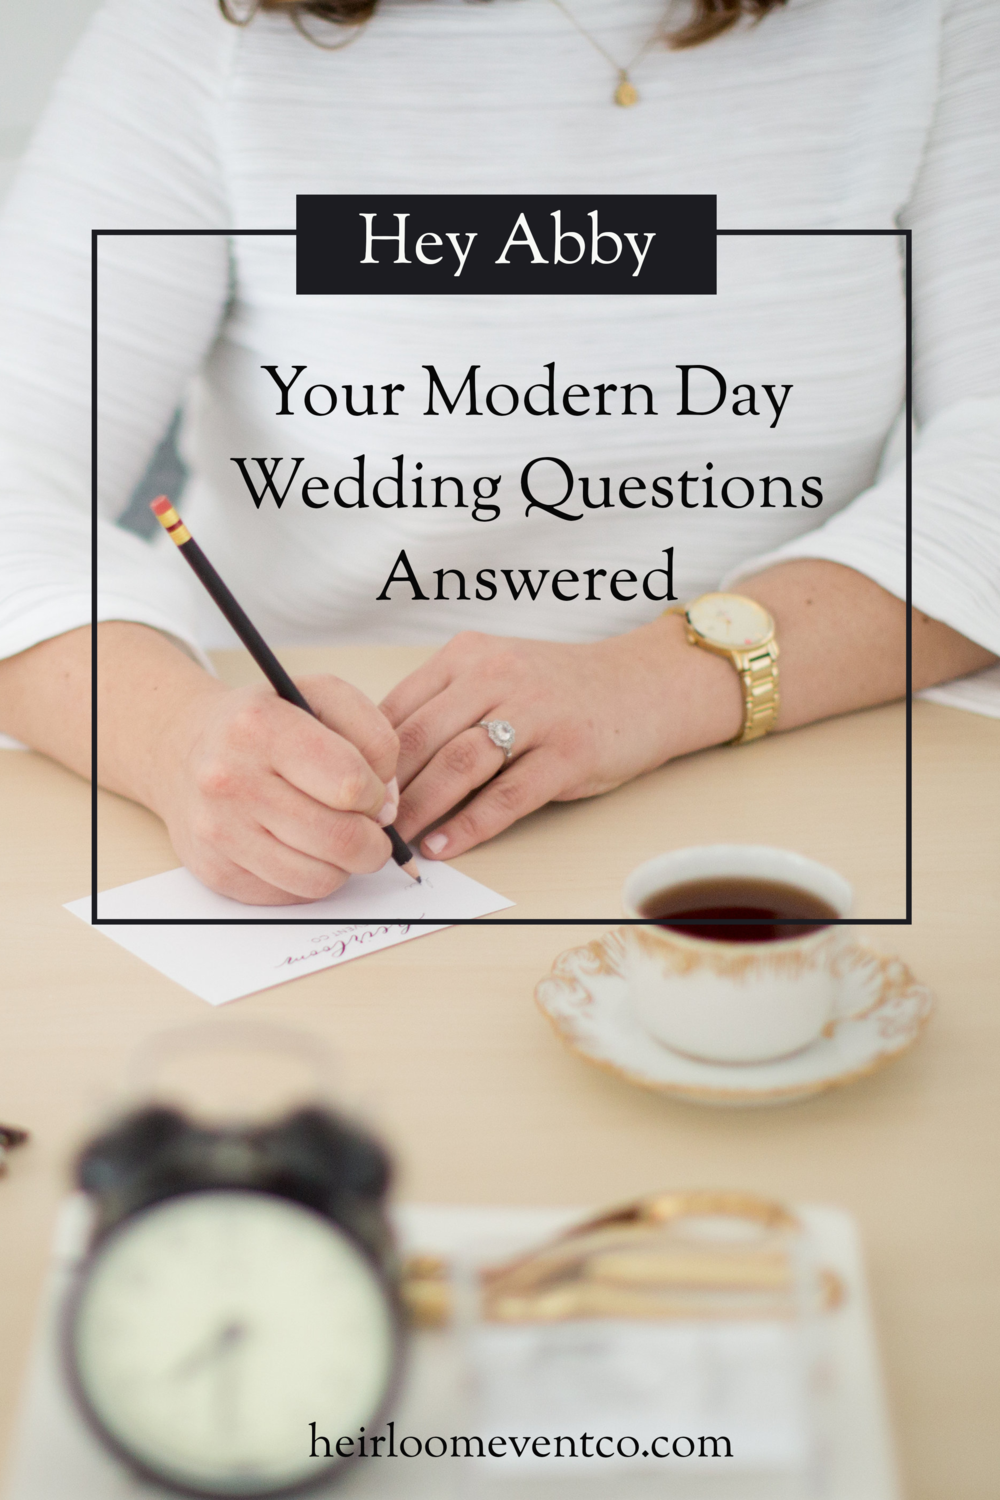 Hey Abby // Your Modern Day Wedding Questions Answered